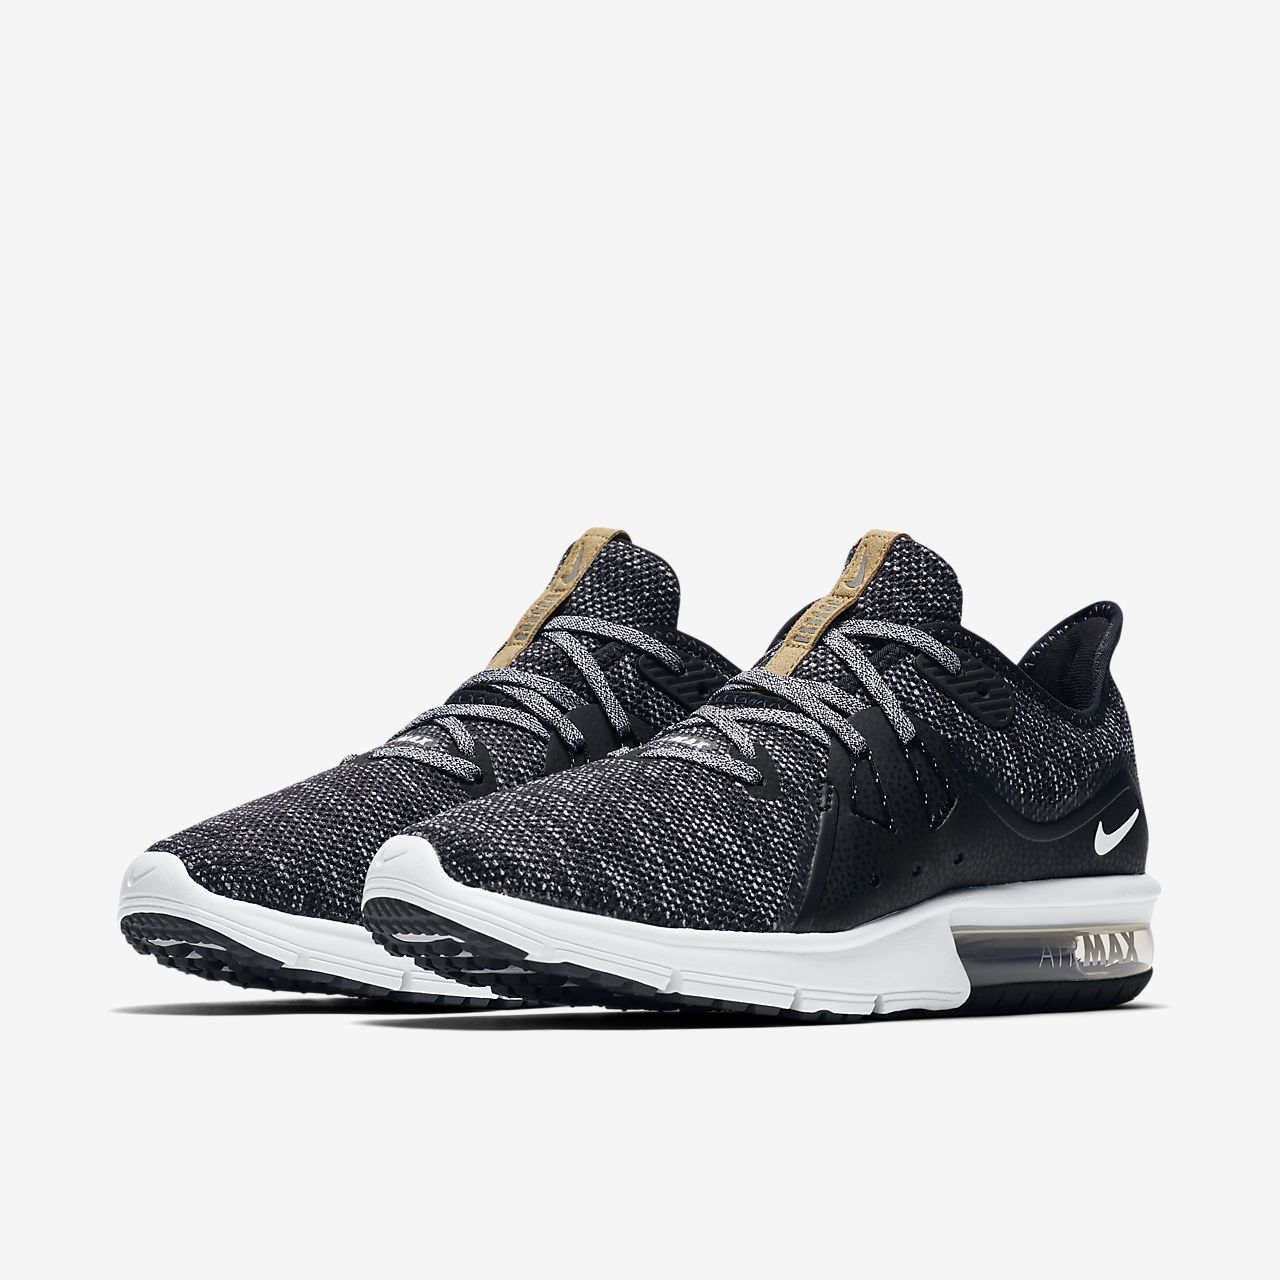 29e5828e4c Nike Air Max Sequent 3 Women's Shoe. Nike.com CA